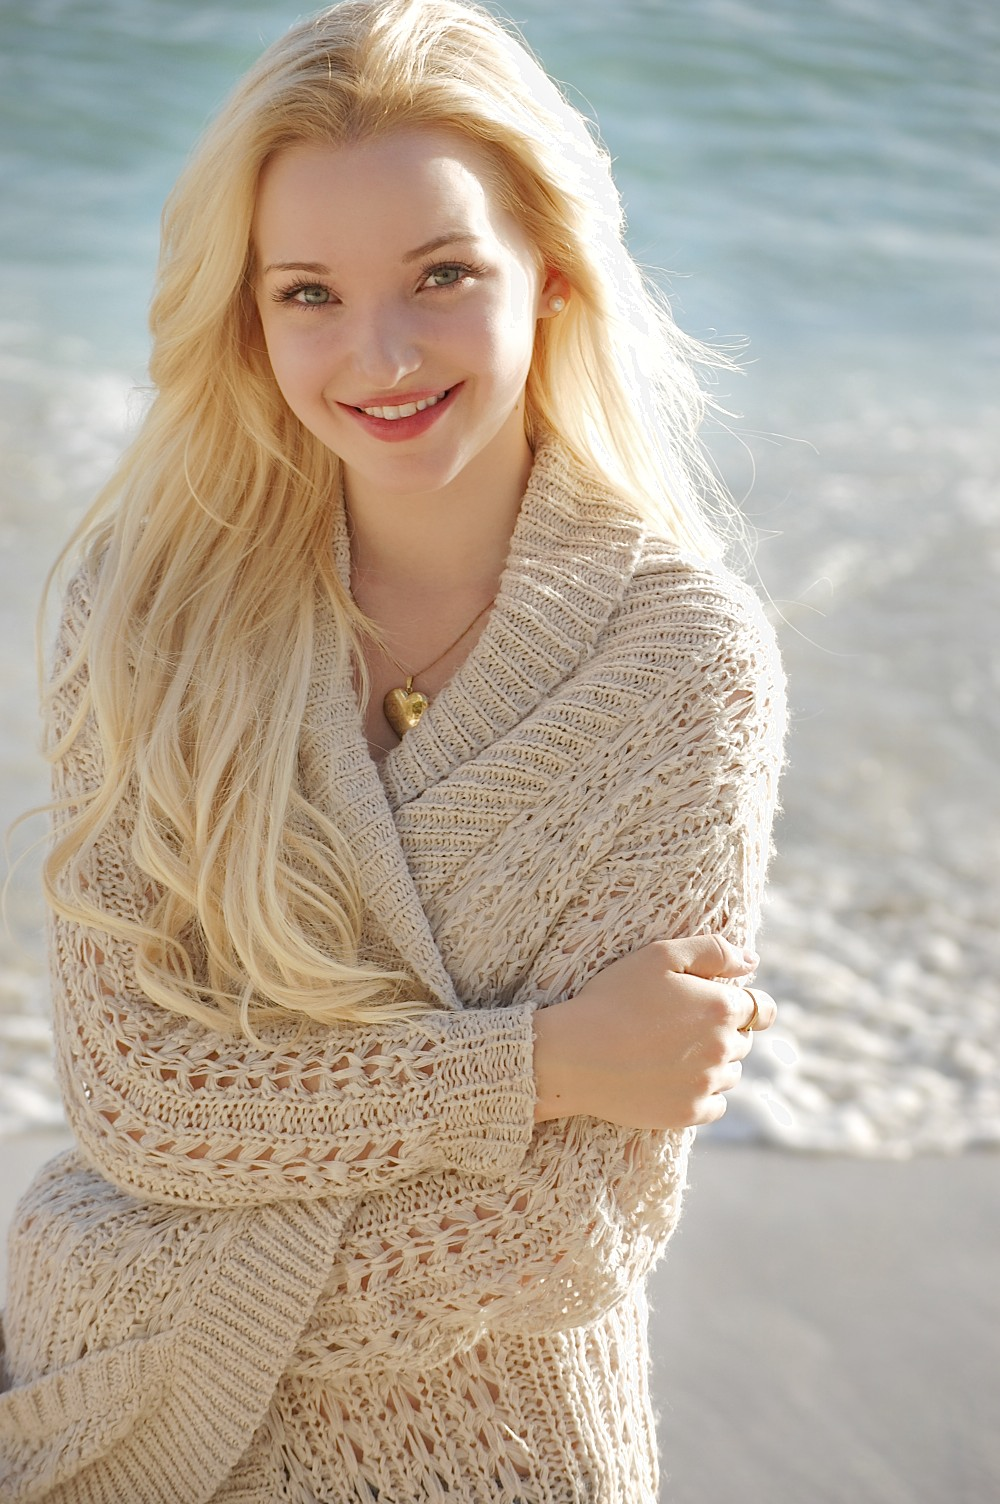 Dove Cameron Nice Beach Pose - Dove Cameron Nice Beach Pose